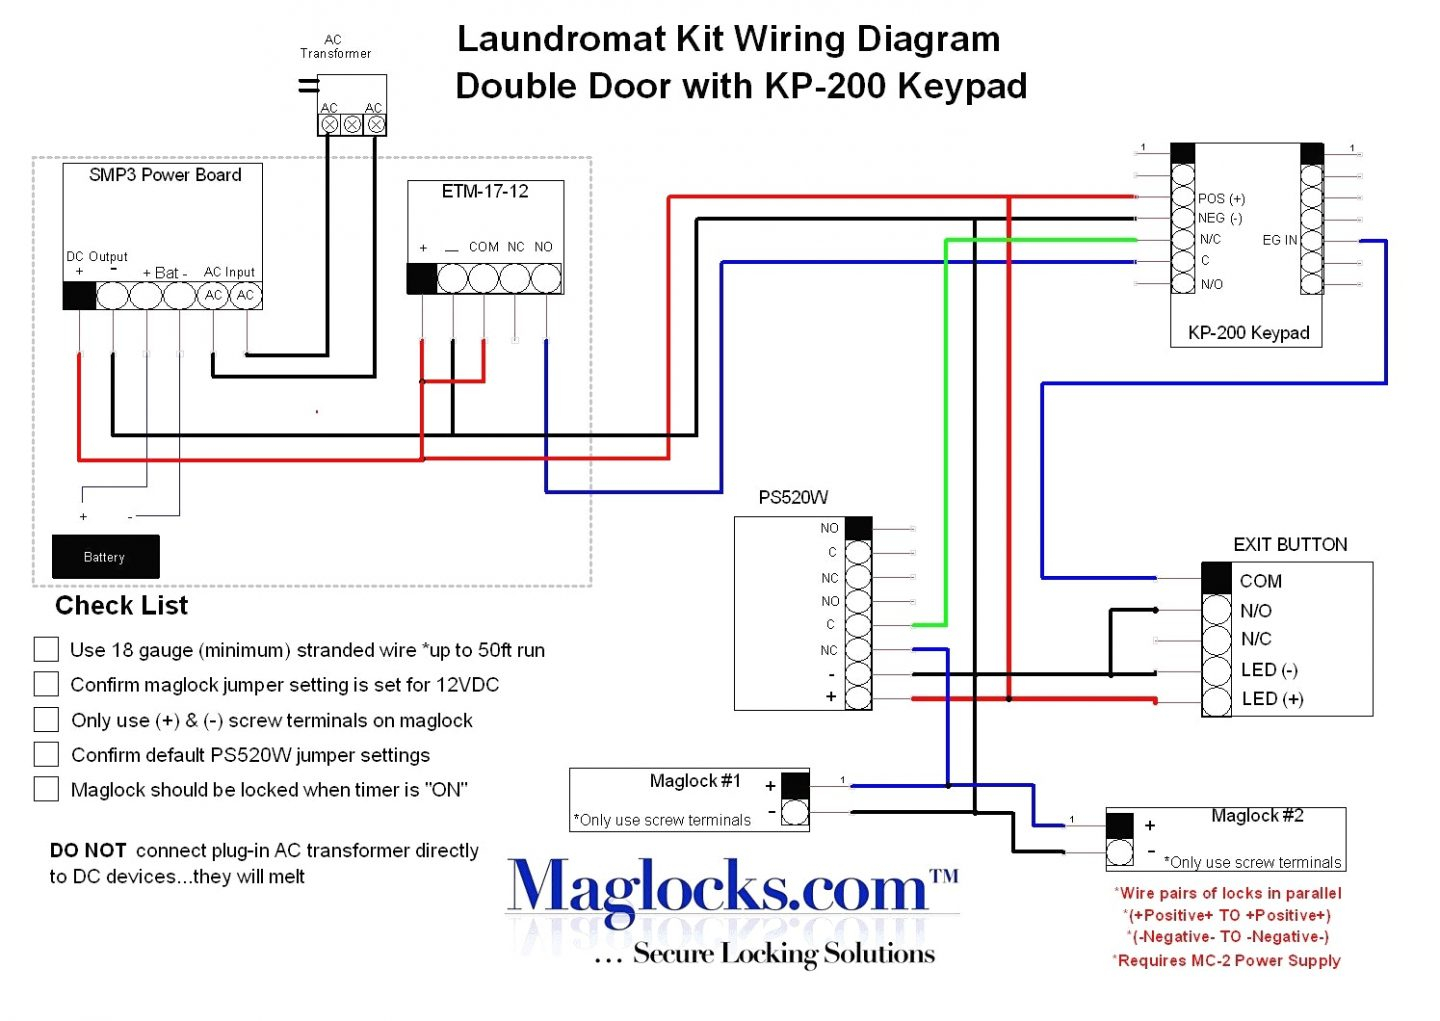 hight resolution of aiphone td 6h wiring diagram collection wiring diagram sample aiphone flyer aiphone td 6h wiring diagram